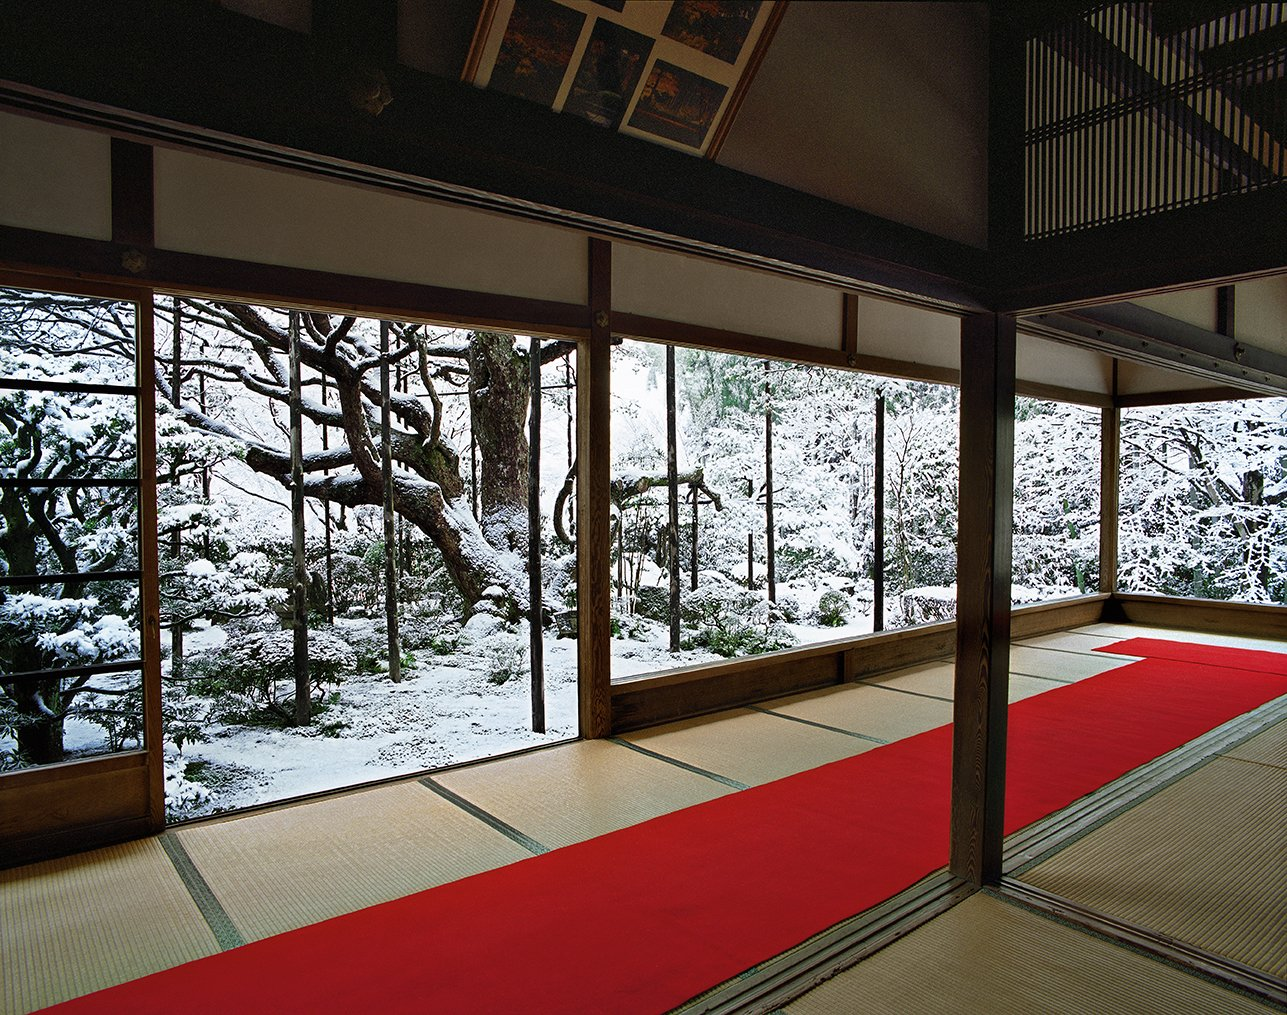 Hōsen-in (2011) - The absence of windows frames the gardens as a natural extension of the meditation space. The effect is an immersive indoor-outdoor experience. Japanese Homes by Dwell